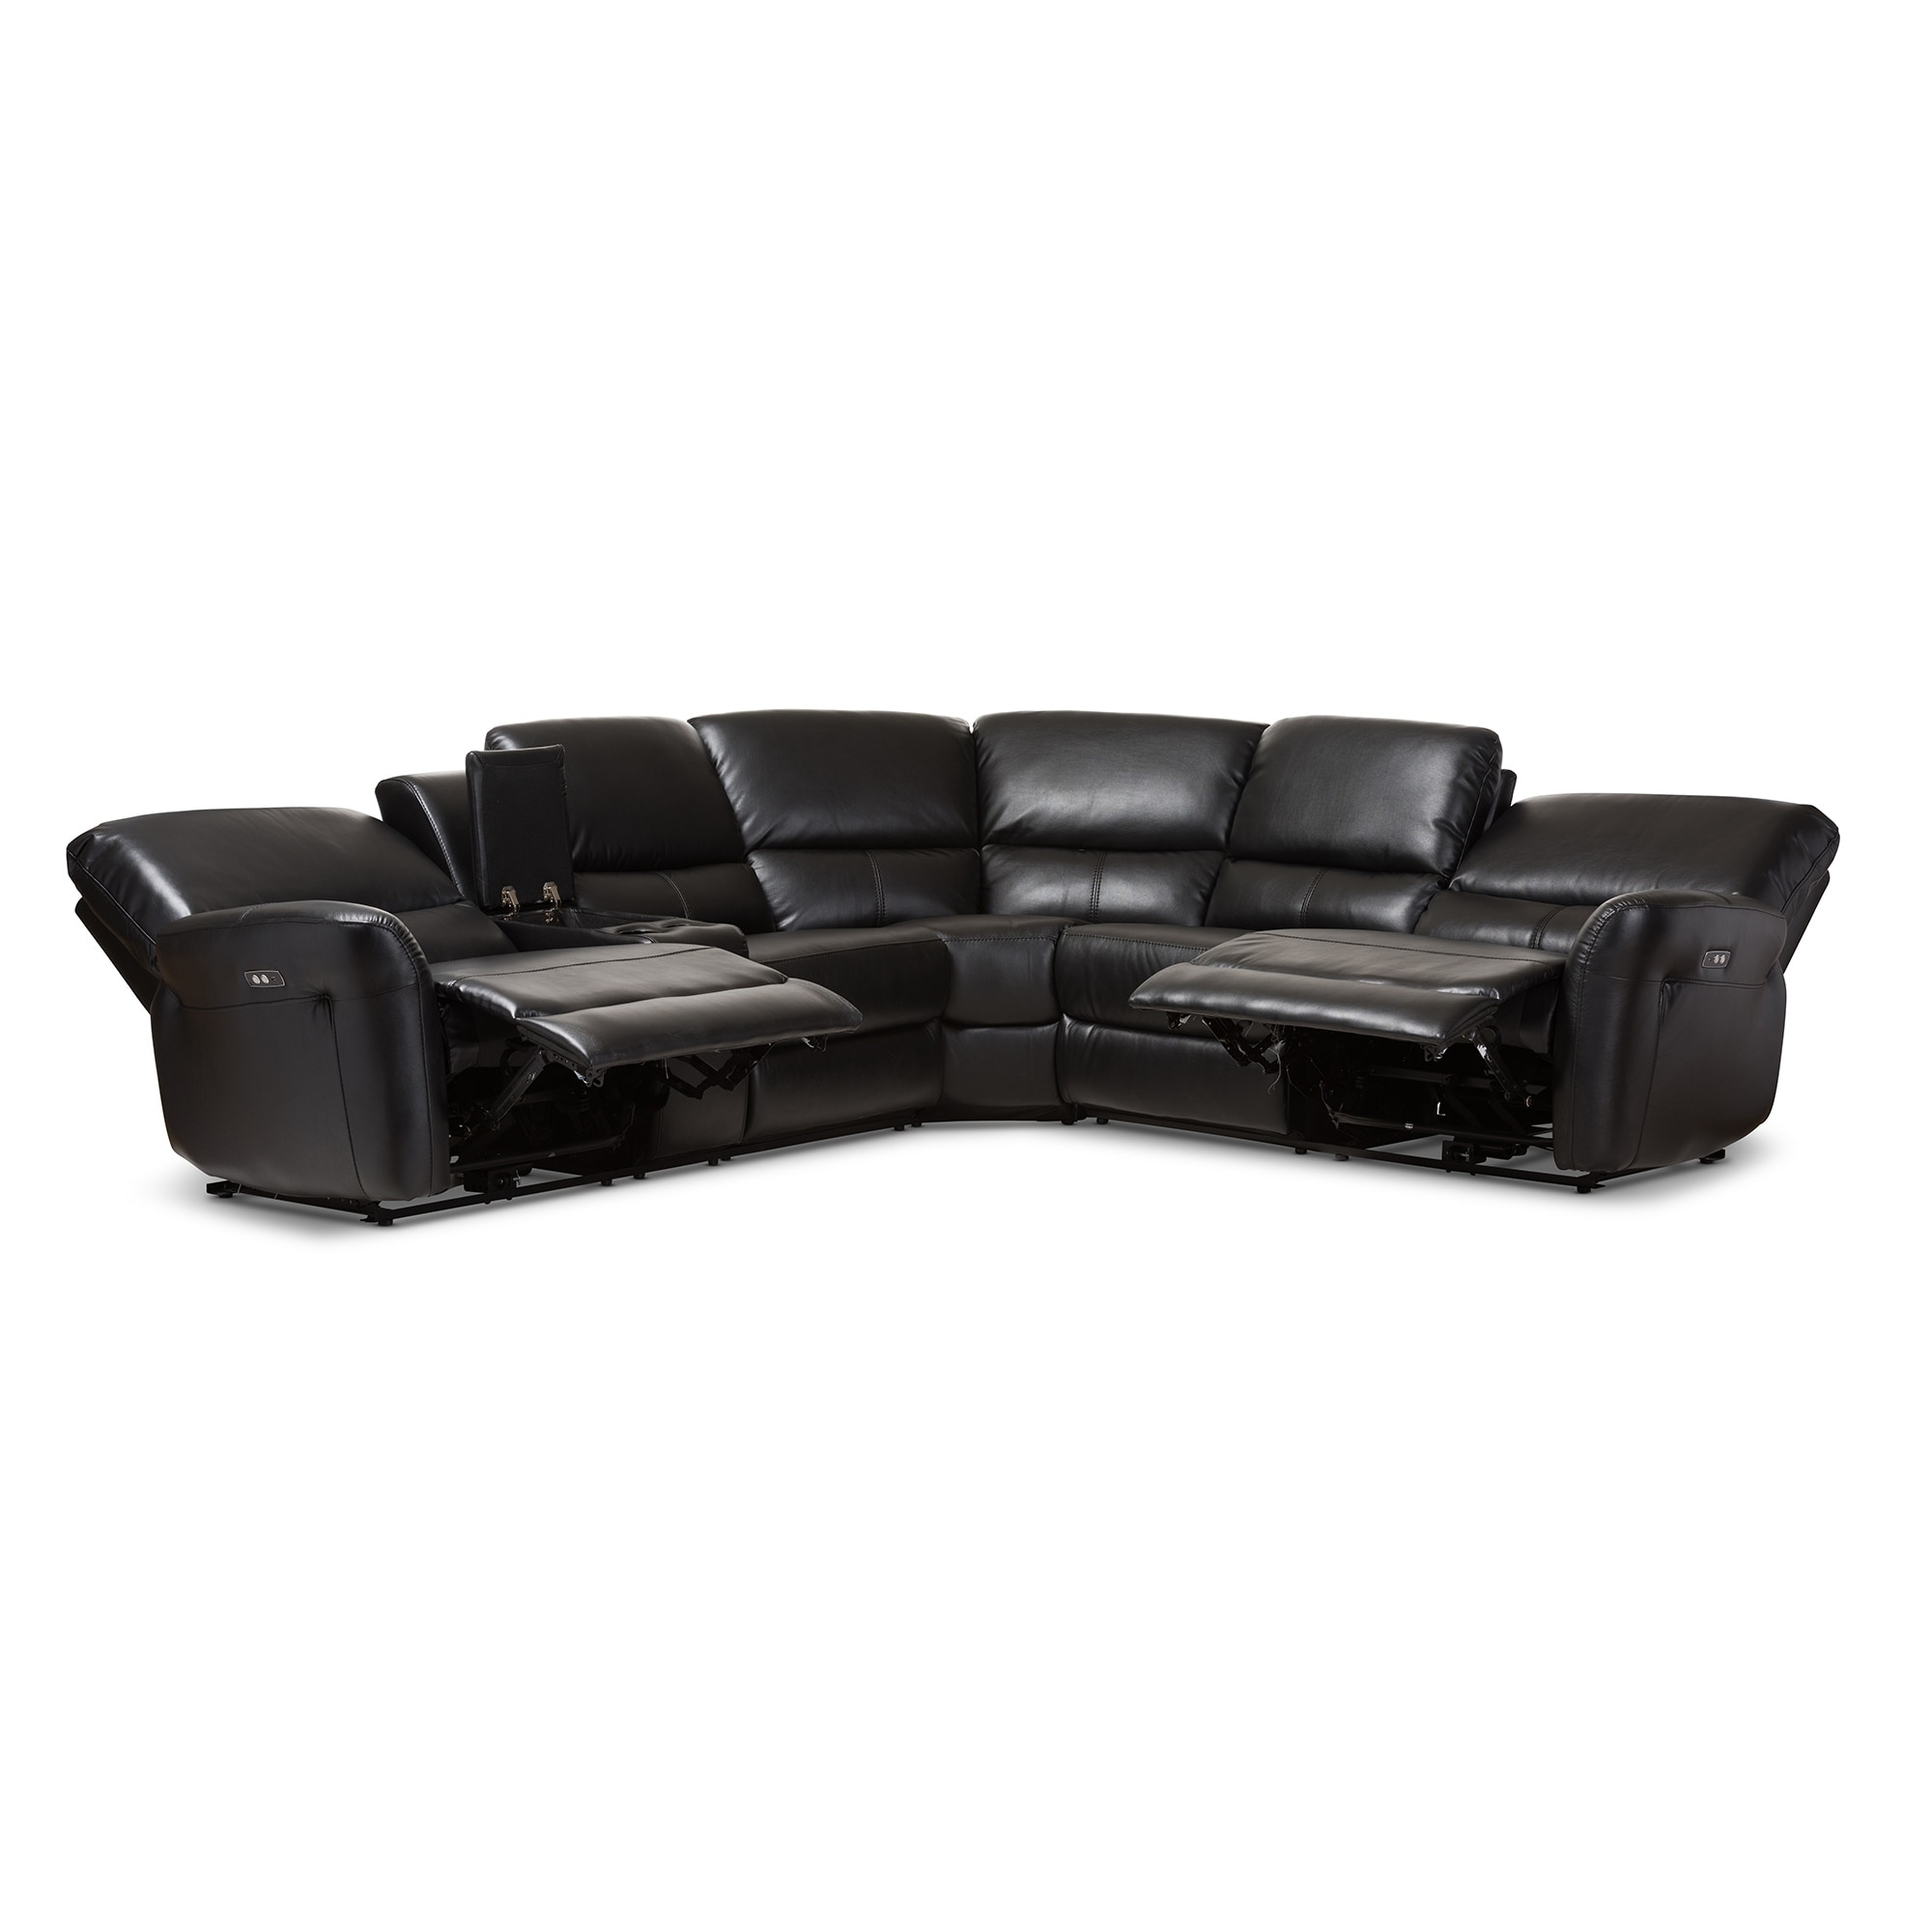 Shop Modern Bonded Leather Power Reclining Sectional Sofa By Baxton